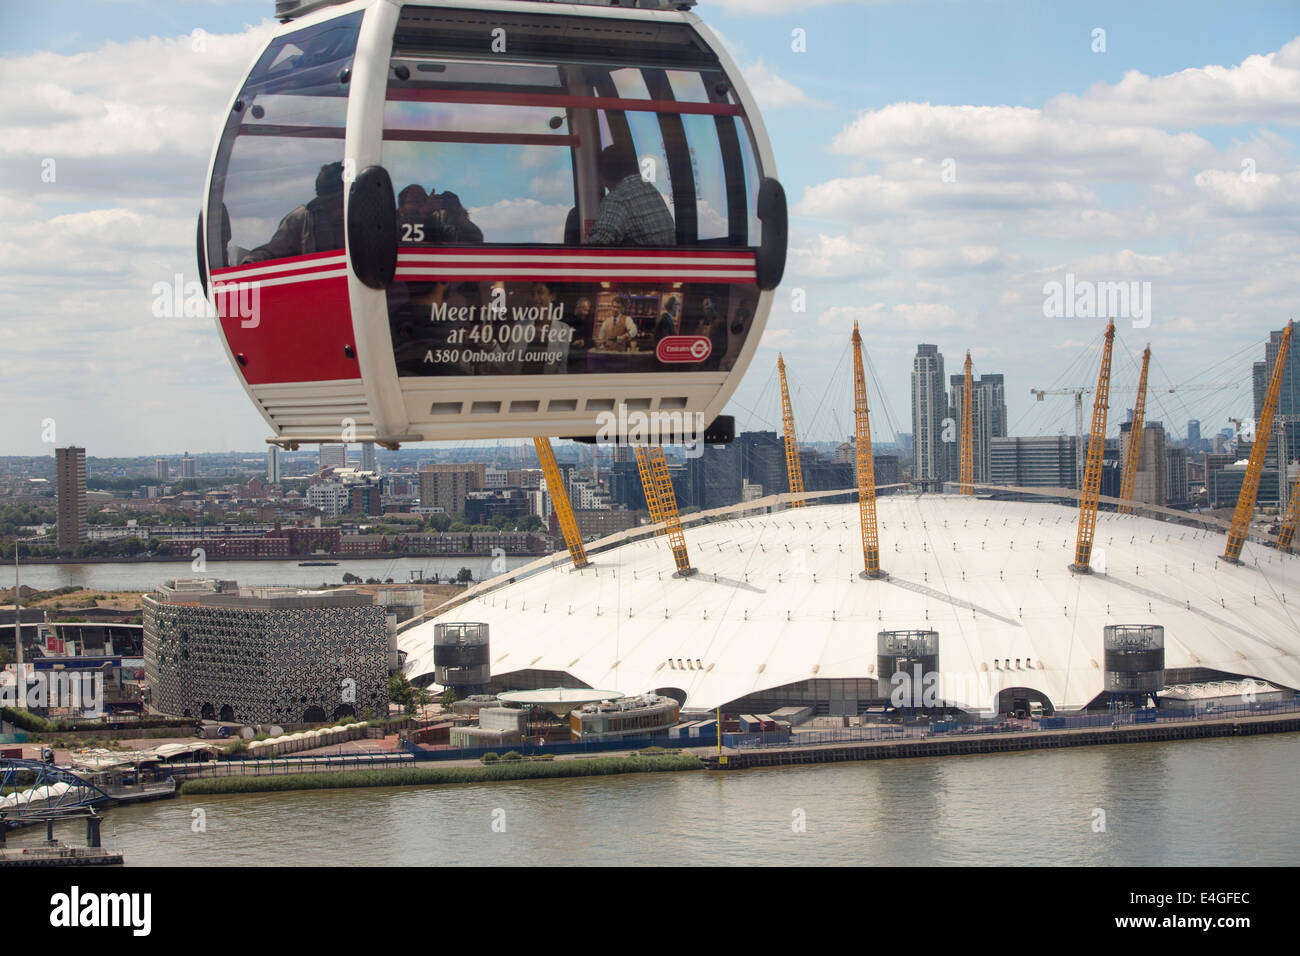 The O2 Arena on the River Thames in london, UK, it was formally the Millenium Dome. Stock Photo